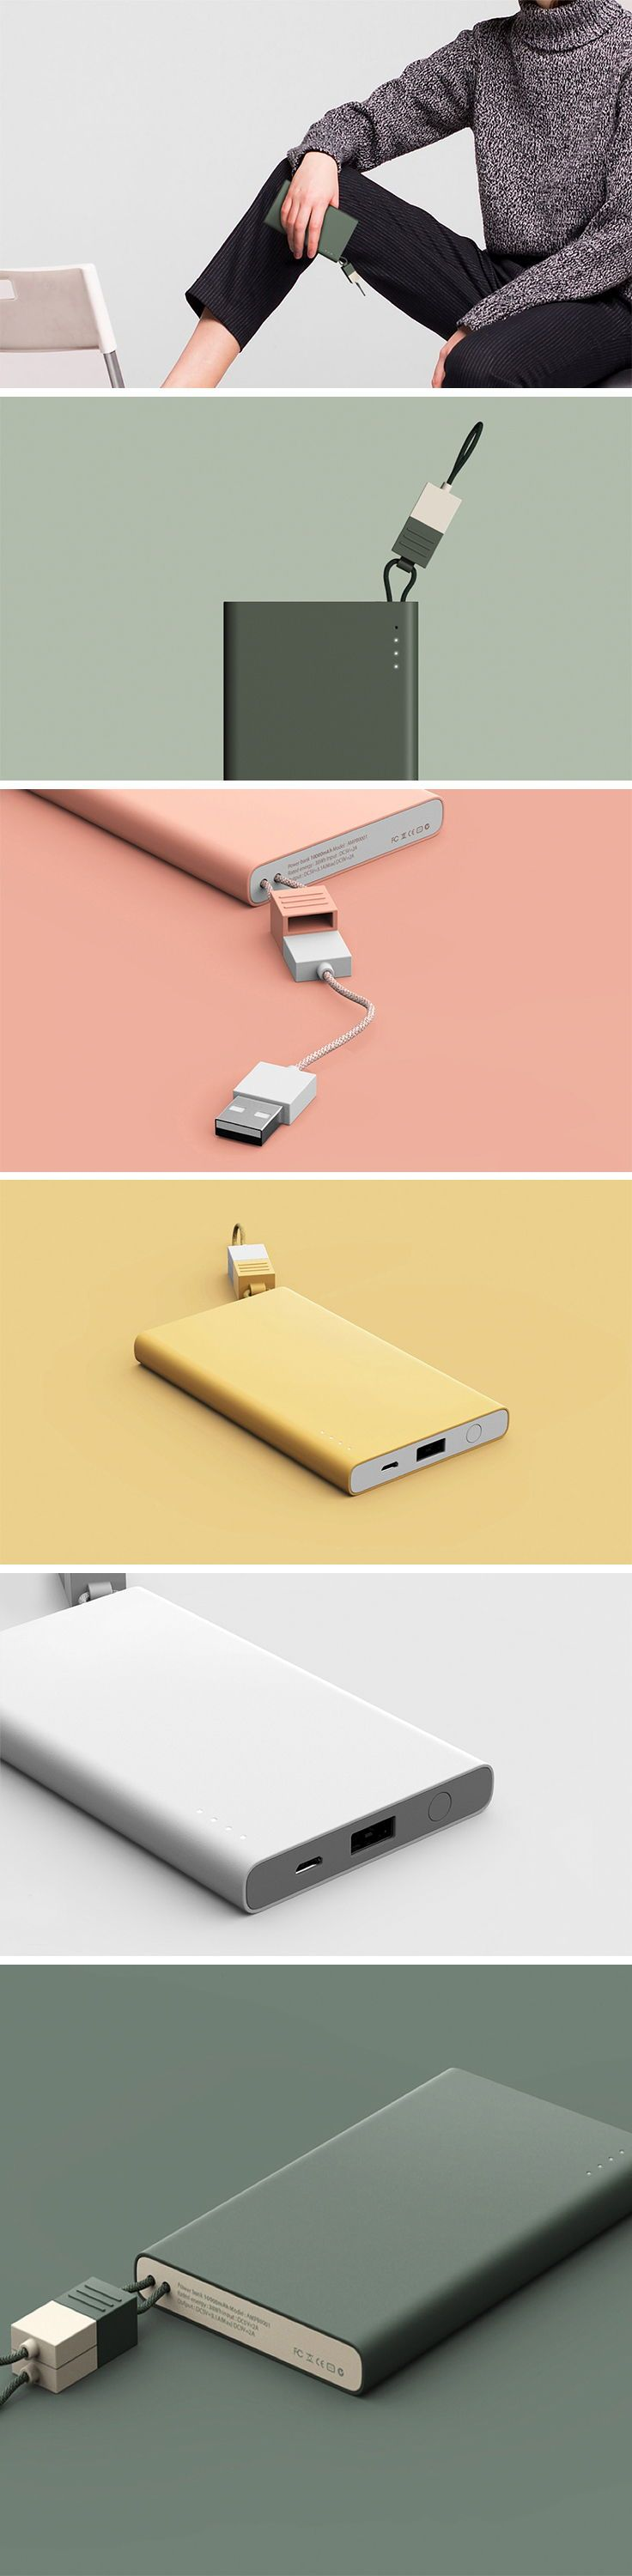 Powerbanks often carry a rather utilitarian aesthetic and this may interfere with your clothing style or current trends TASSEL bats this by featuring a